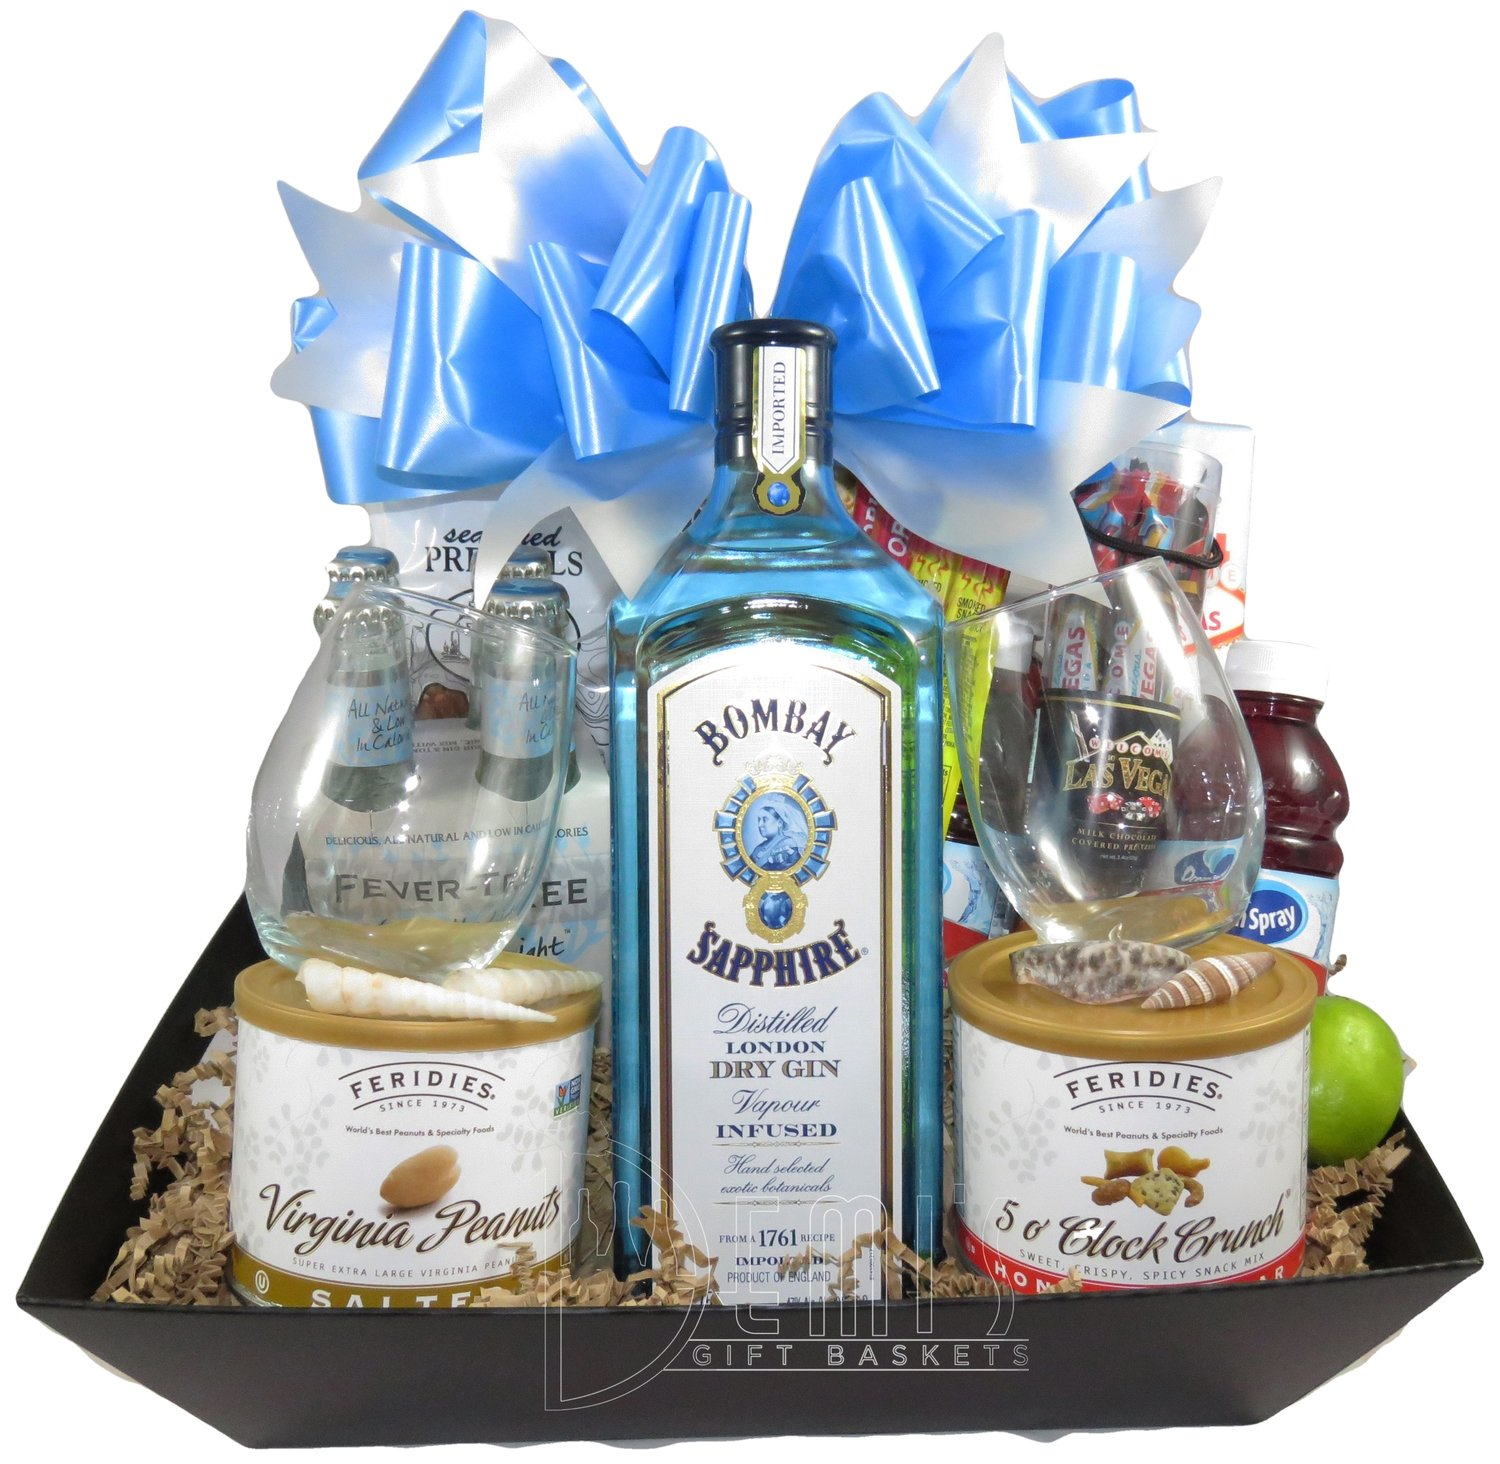 Bombay Sapphire Dry Gin basket